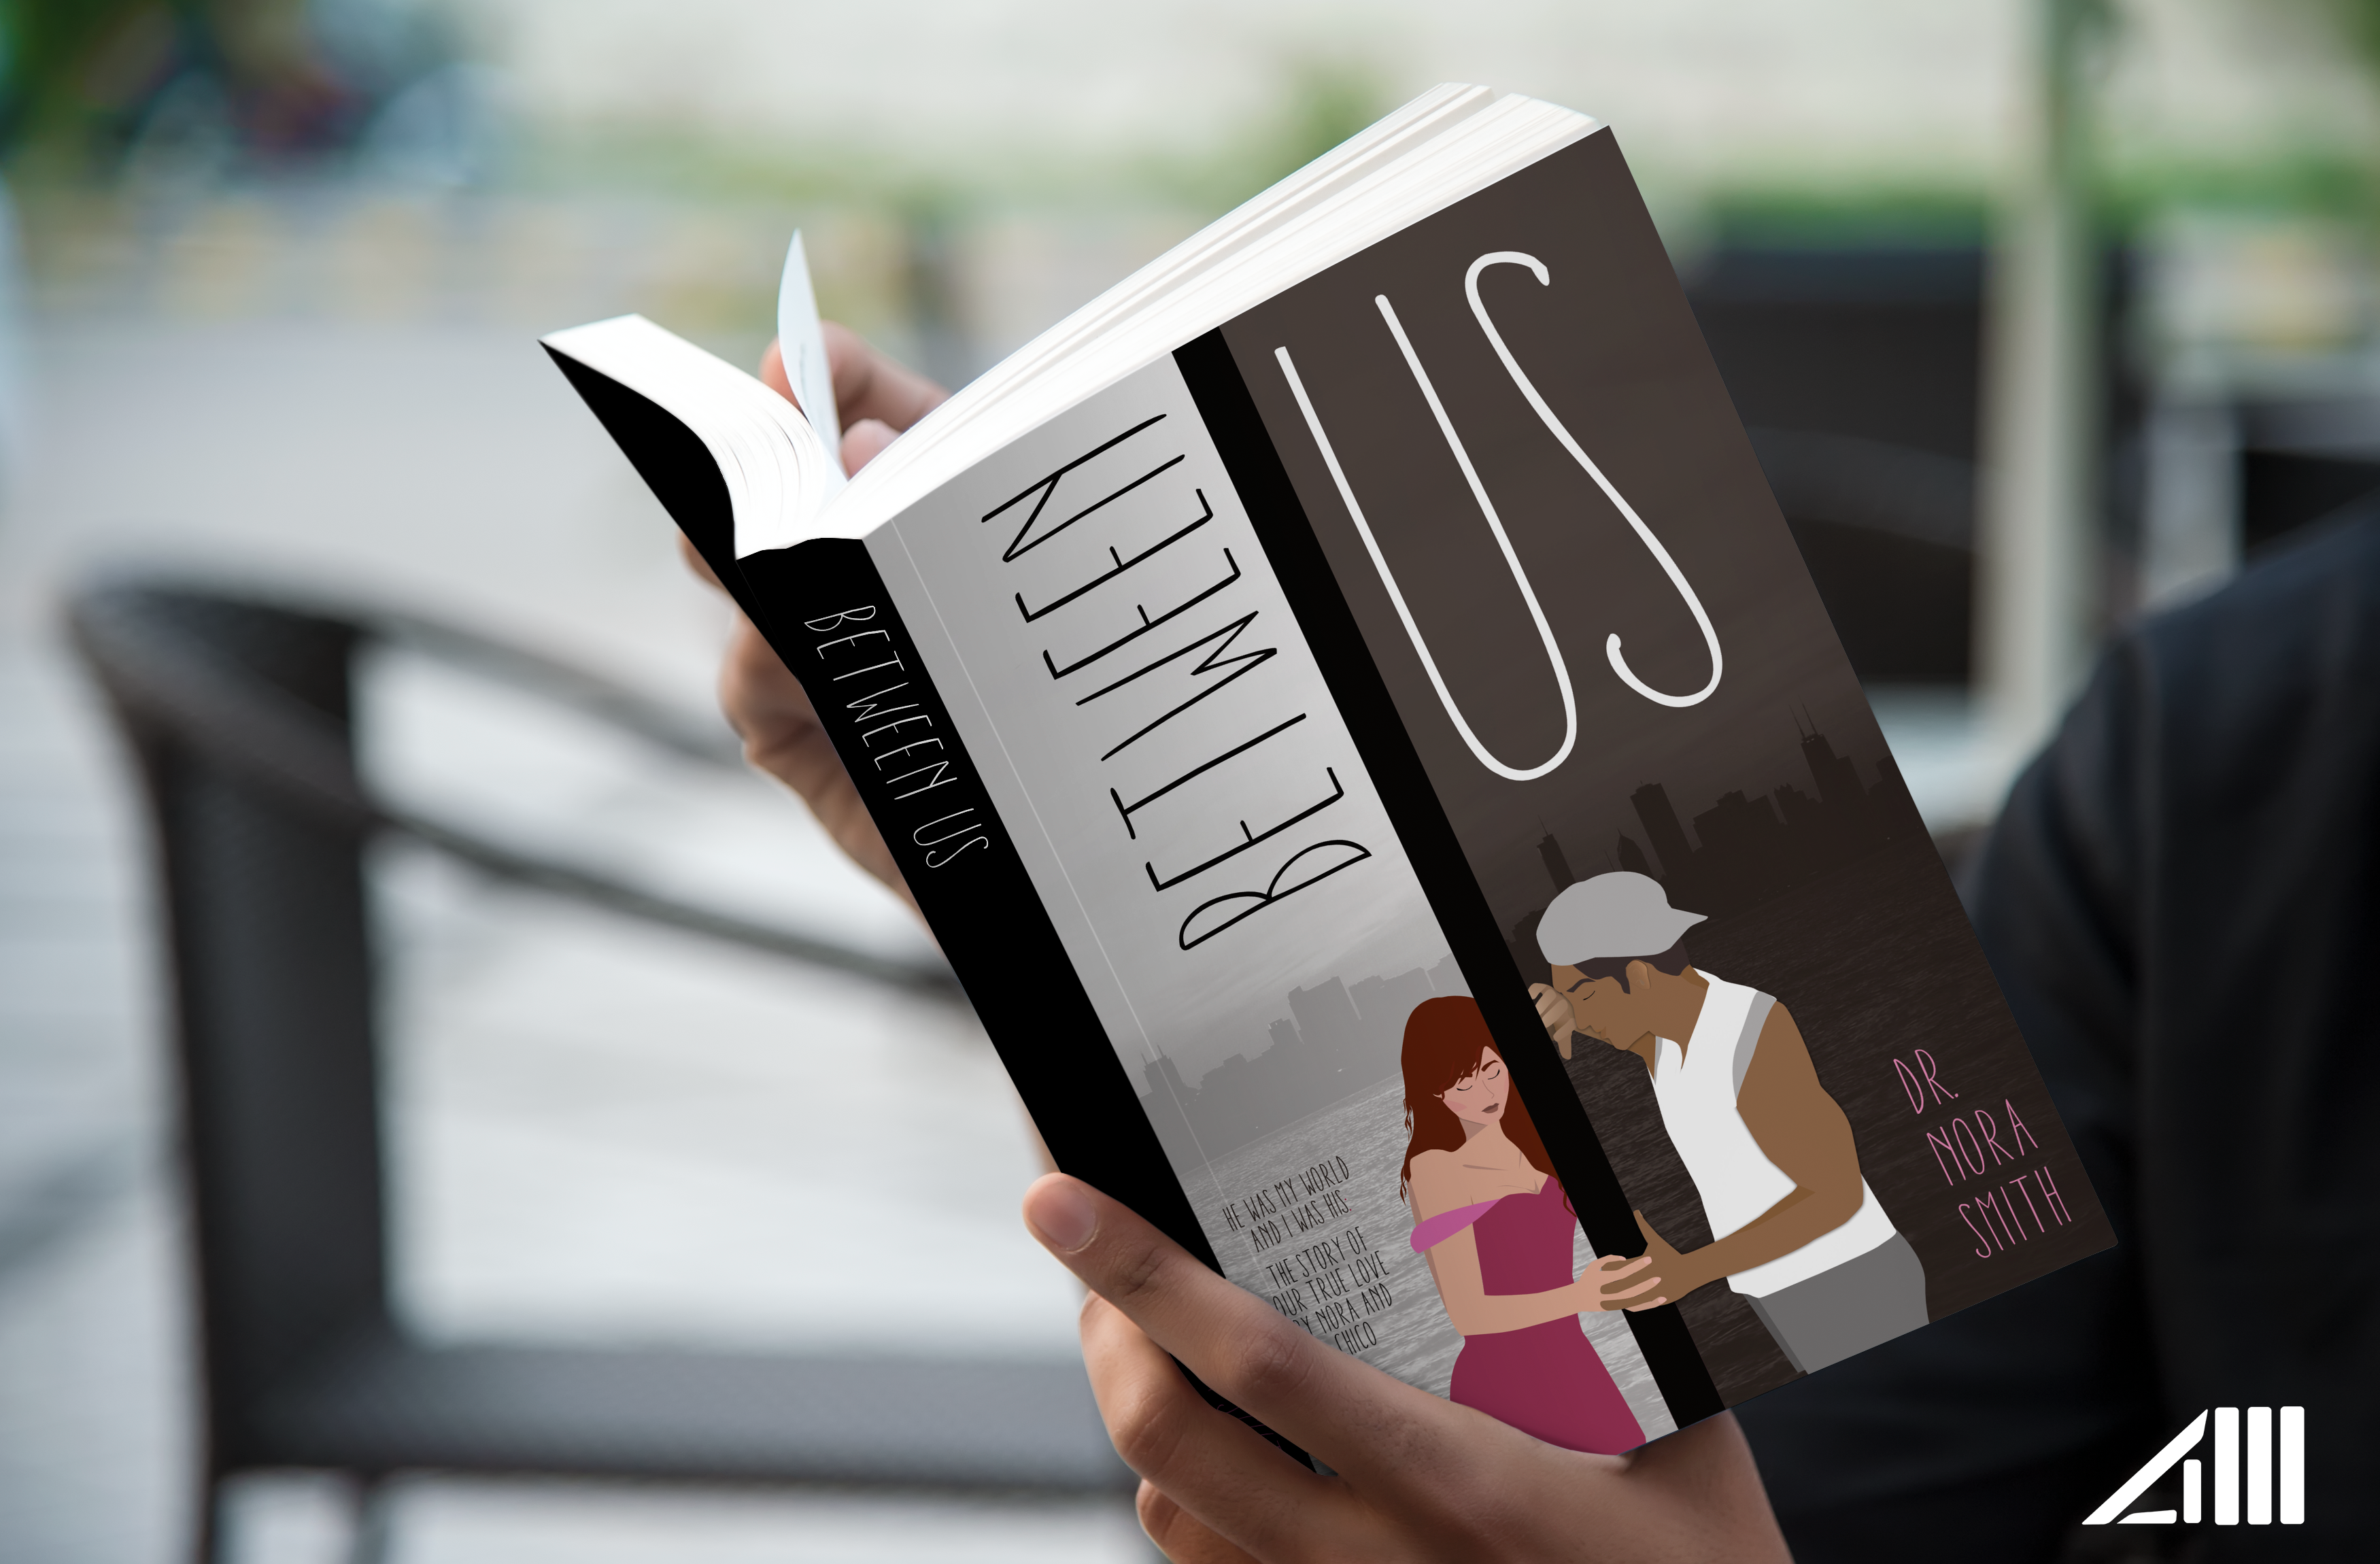 BETWEEN US (Title, Illustration & Book Cover Design)